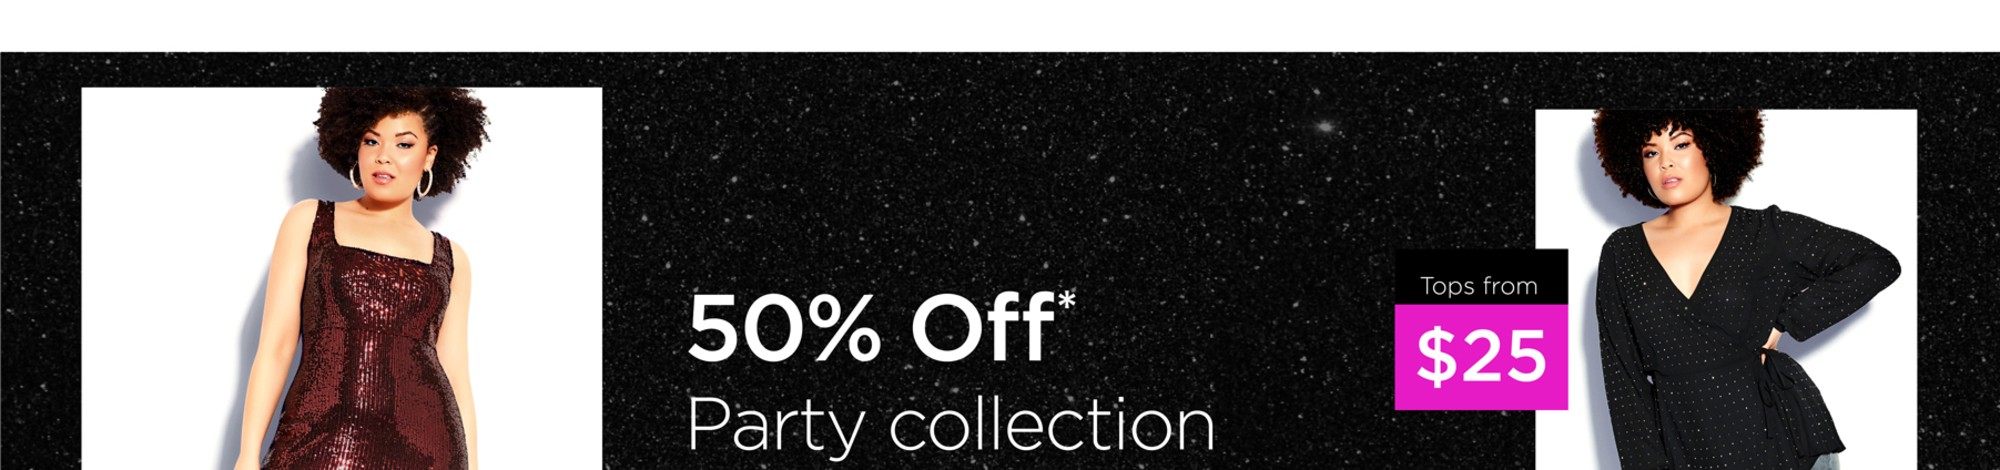 50% Off Party